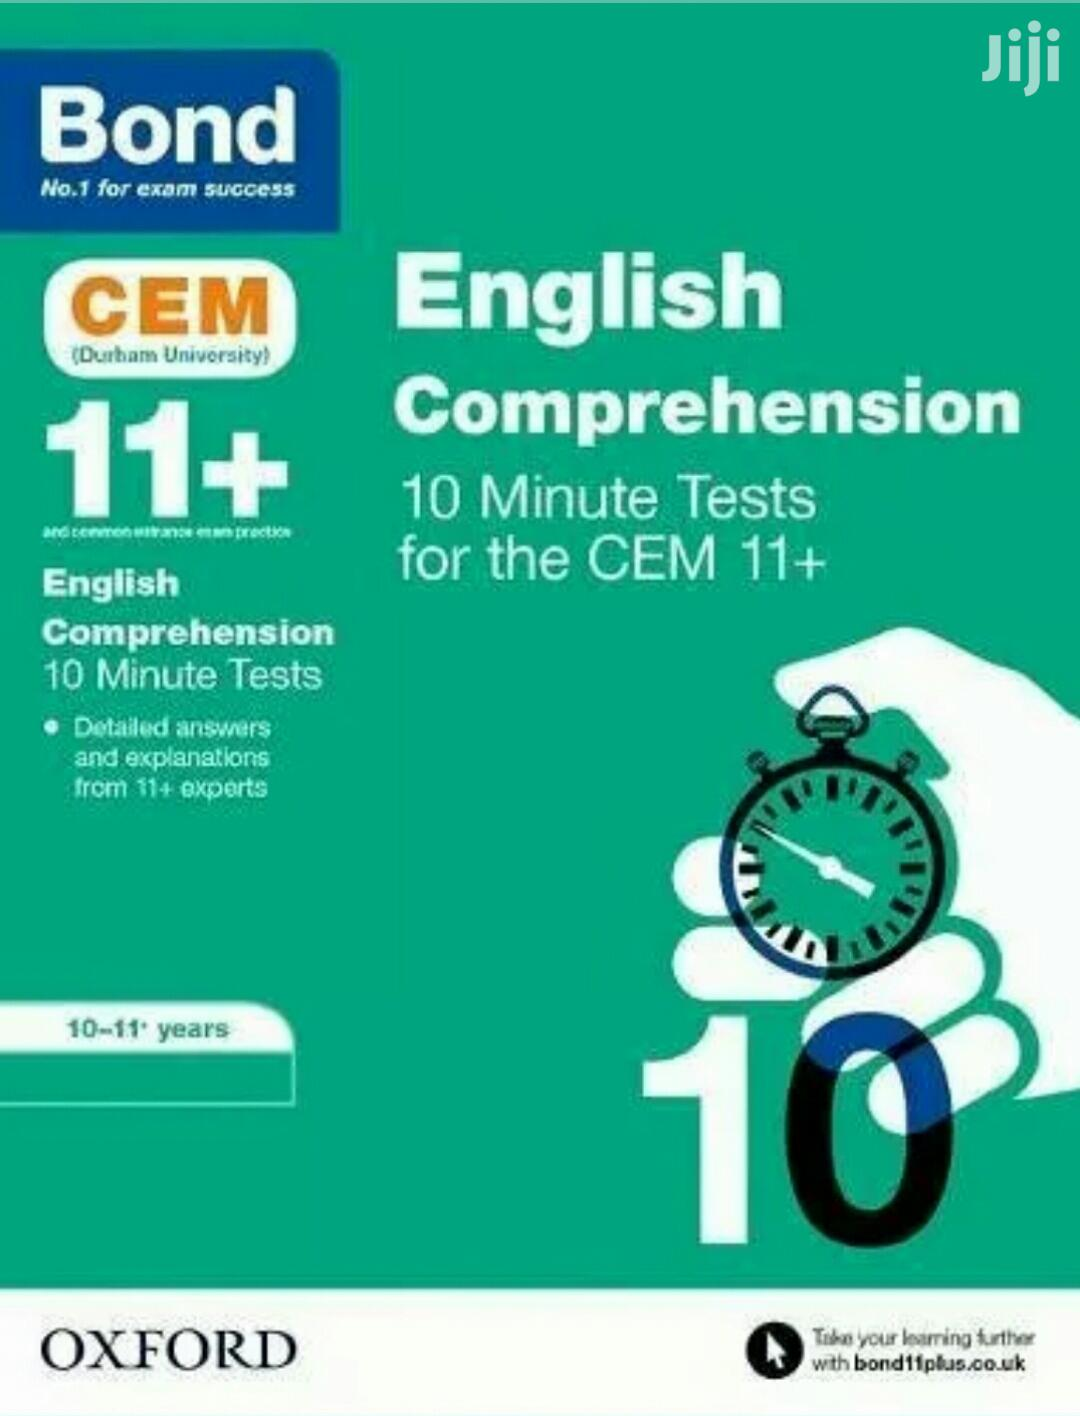 Learn Listening Skills And English Comprehension